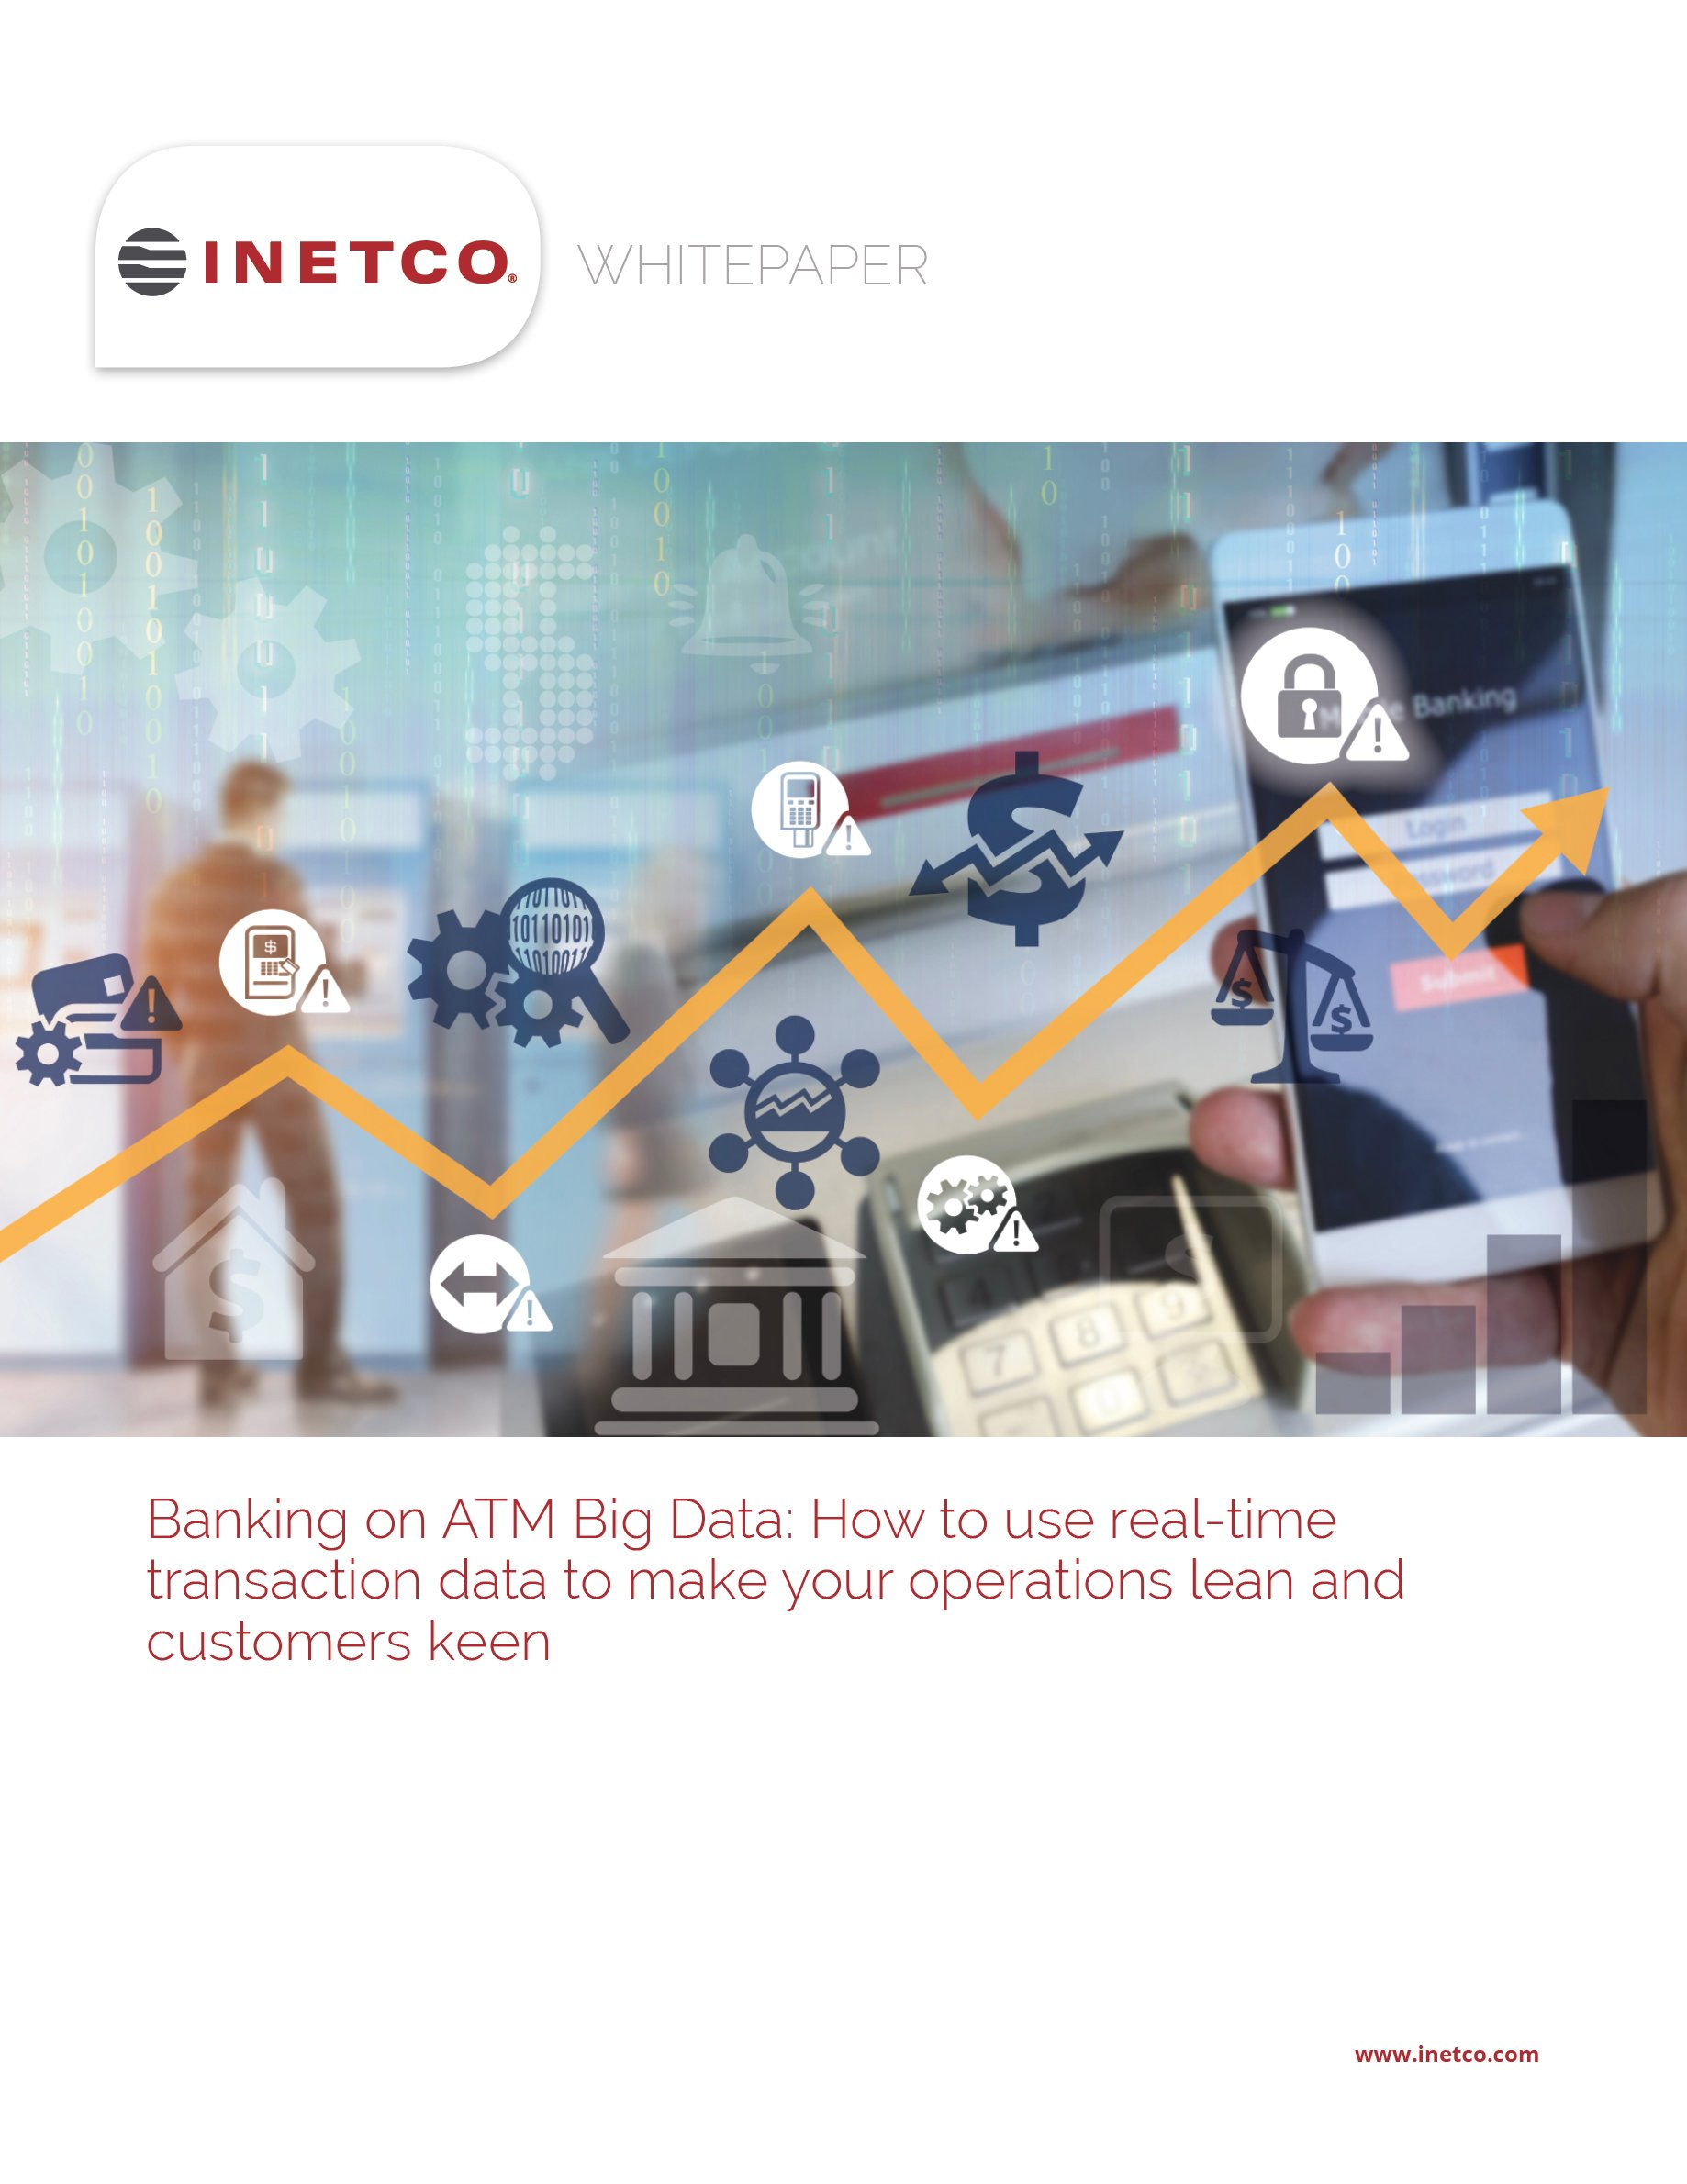 inetco-banking-atm-big-data-wp